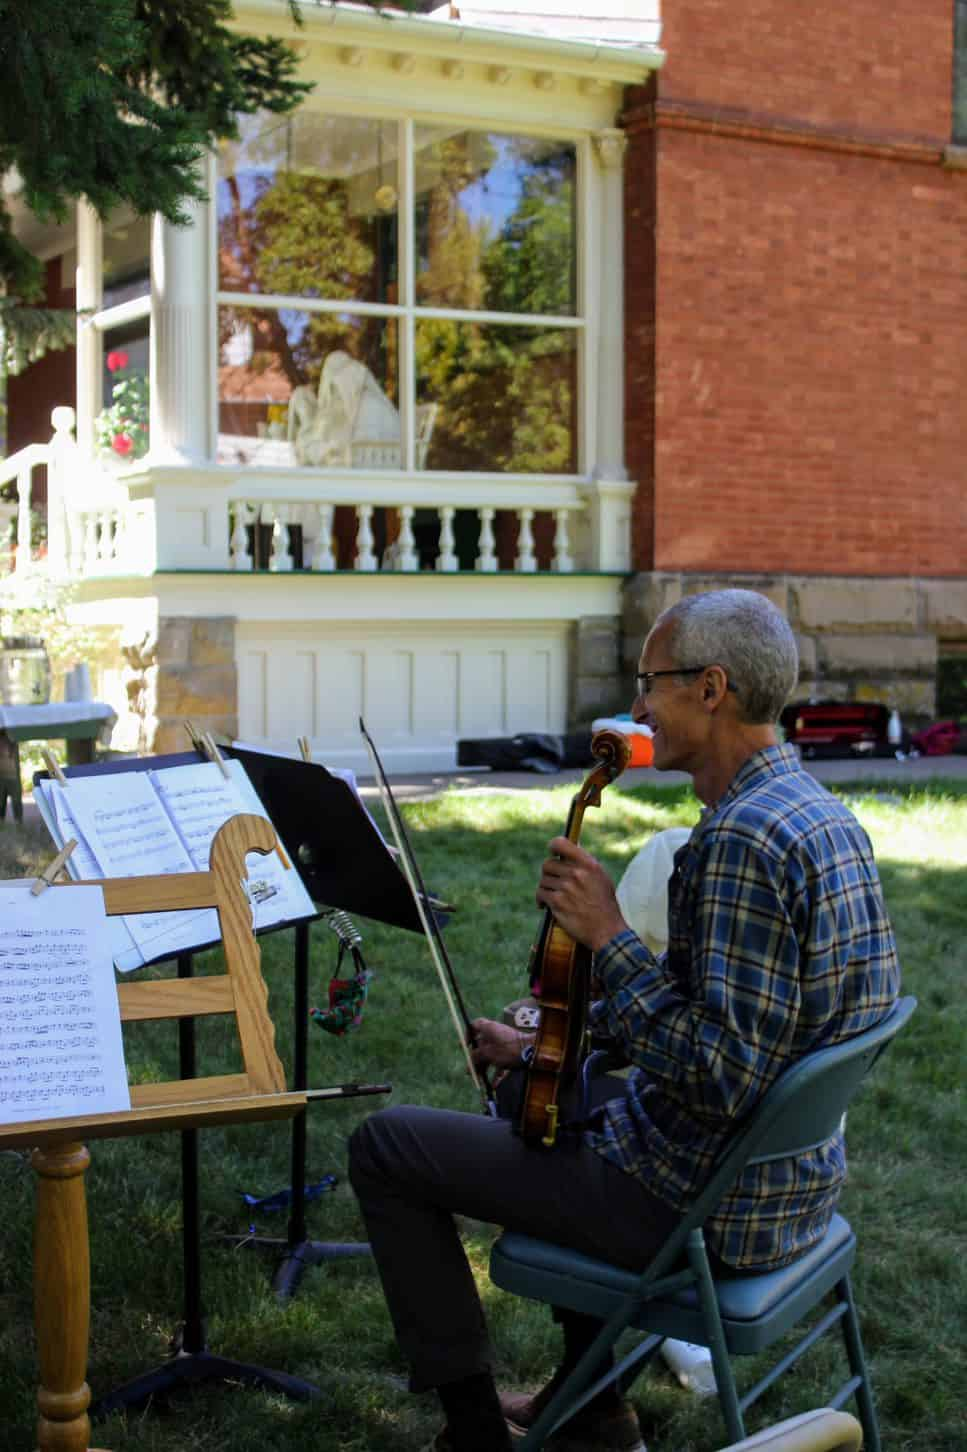 Period Performance Workshop participant at the Campeau House (photo courtesy of Bozeman Symphony)